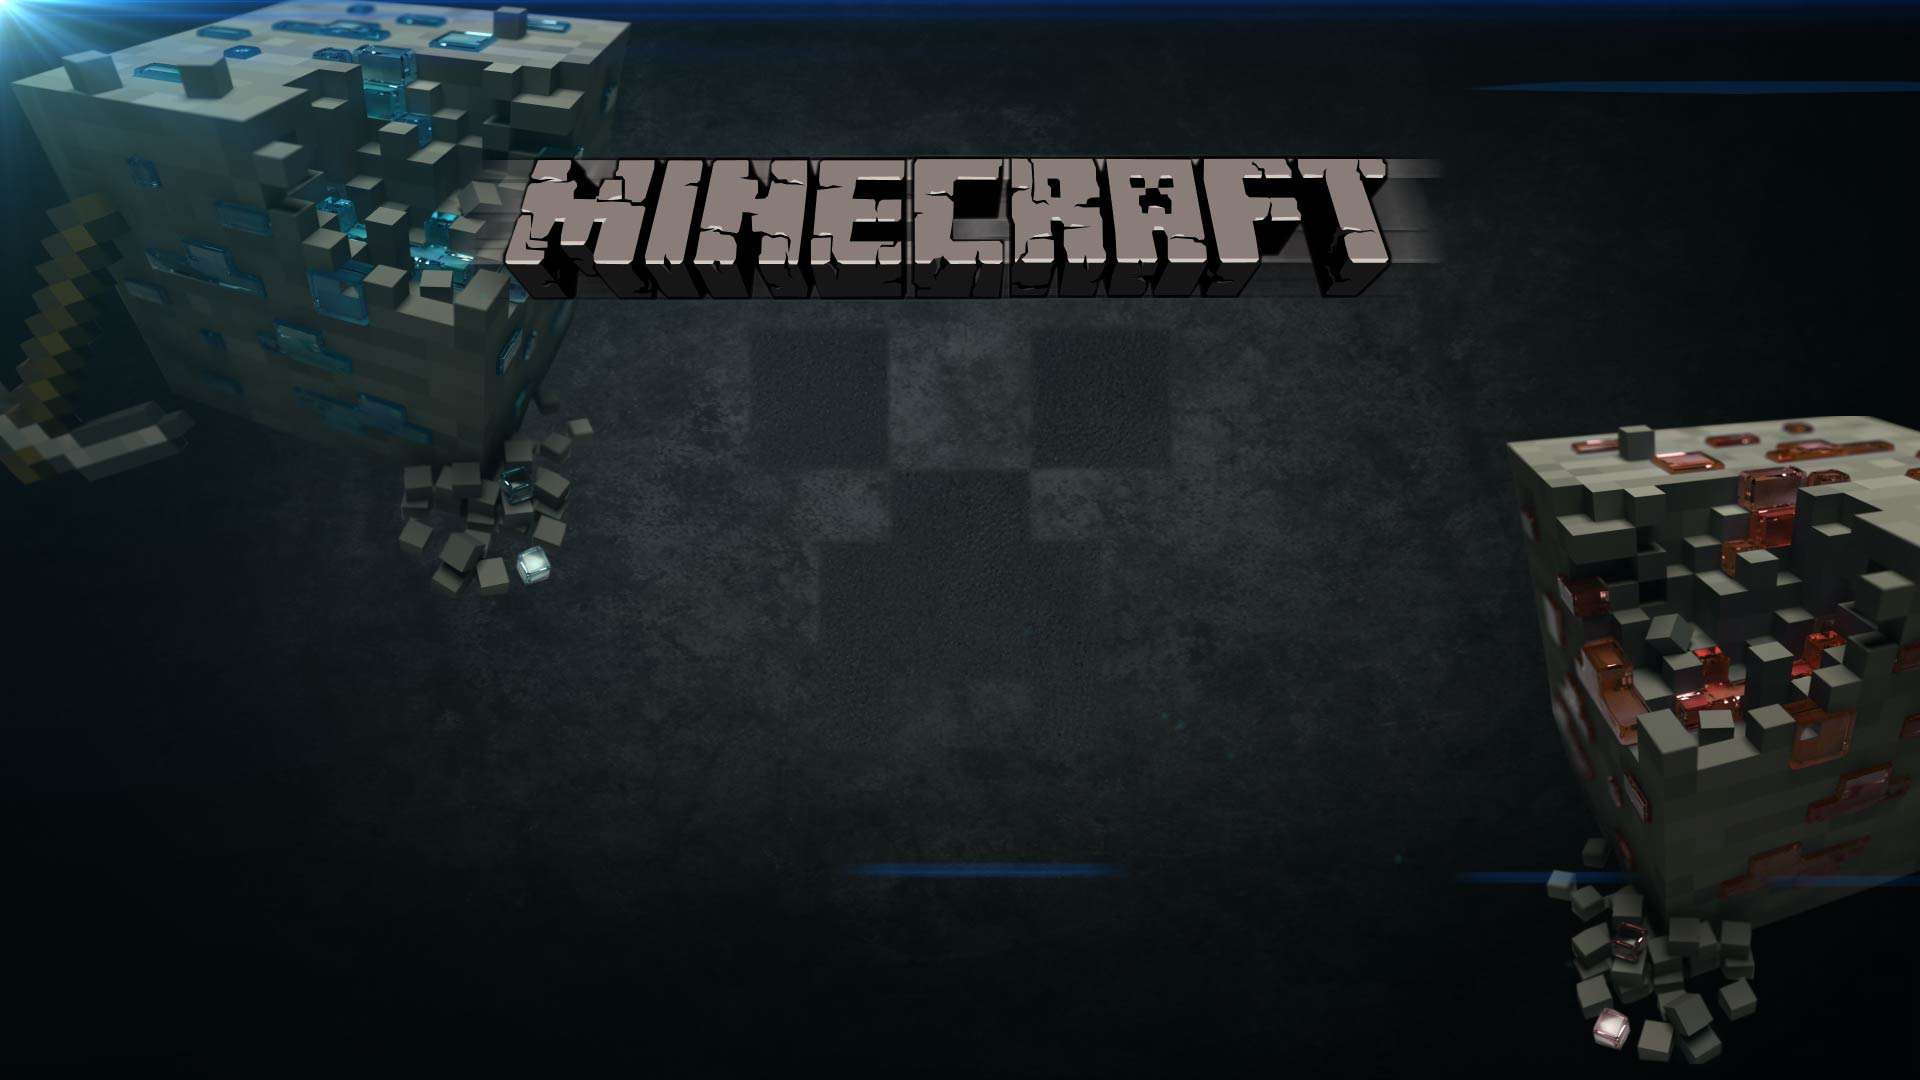 Minecraft Top Wallpapers For Your Desktop 1920 X 1080